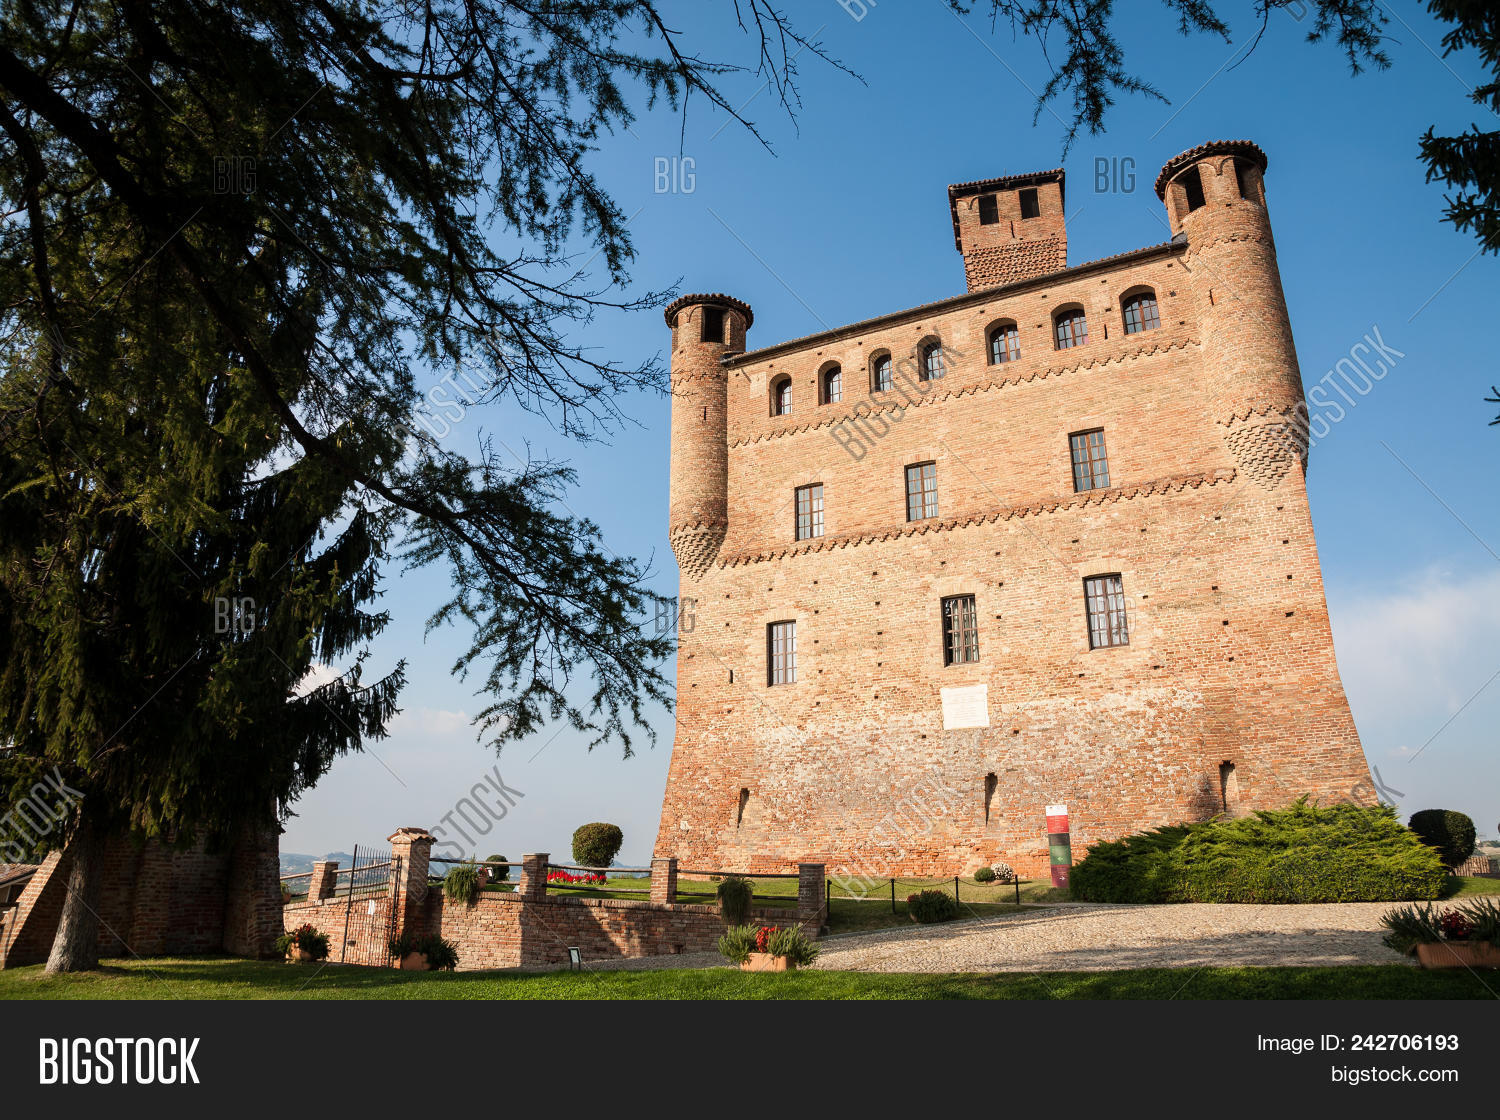 grinzane cavour italy 2016 september 27 the red brick castle of grinzane